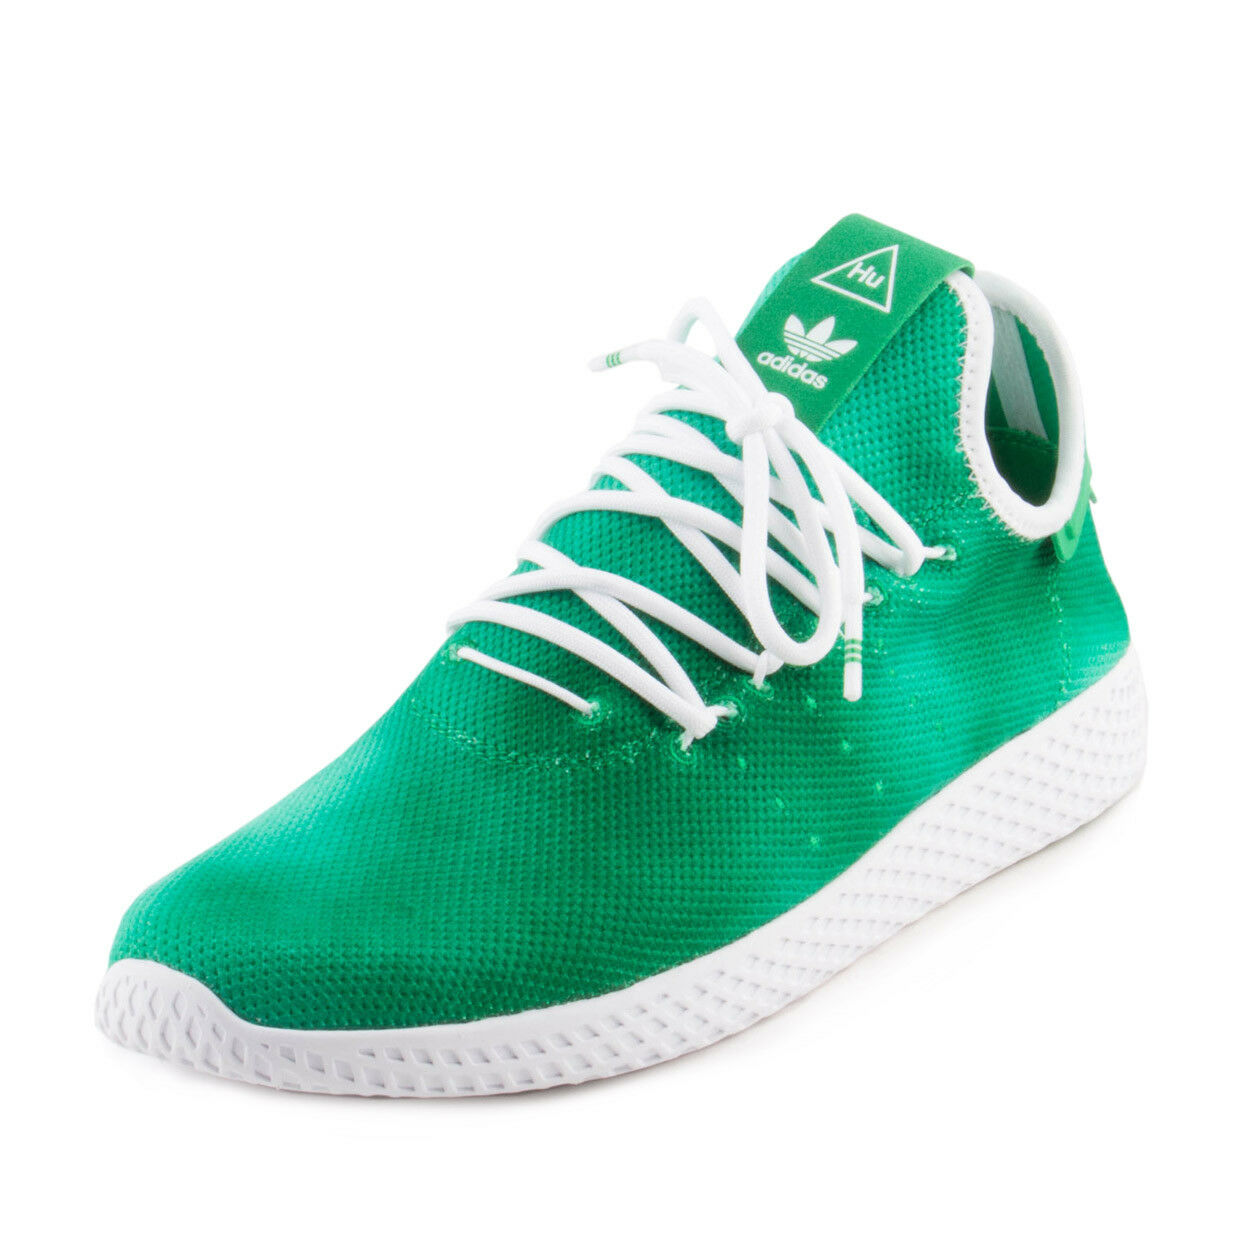 Adidas  Uomo PW HU HOLI Tennis HU Pharrell Williams Green/White DA9619